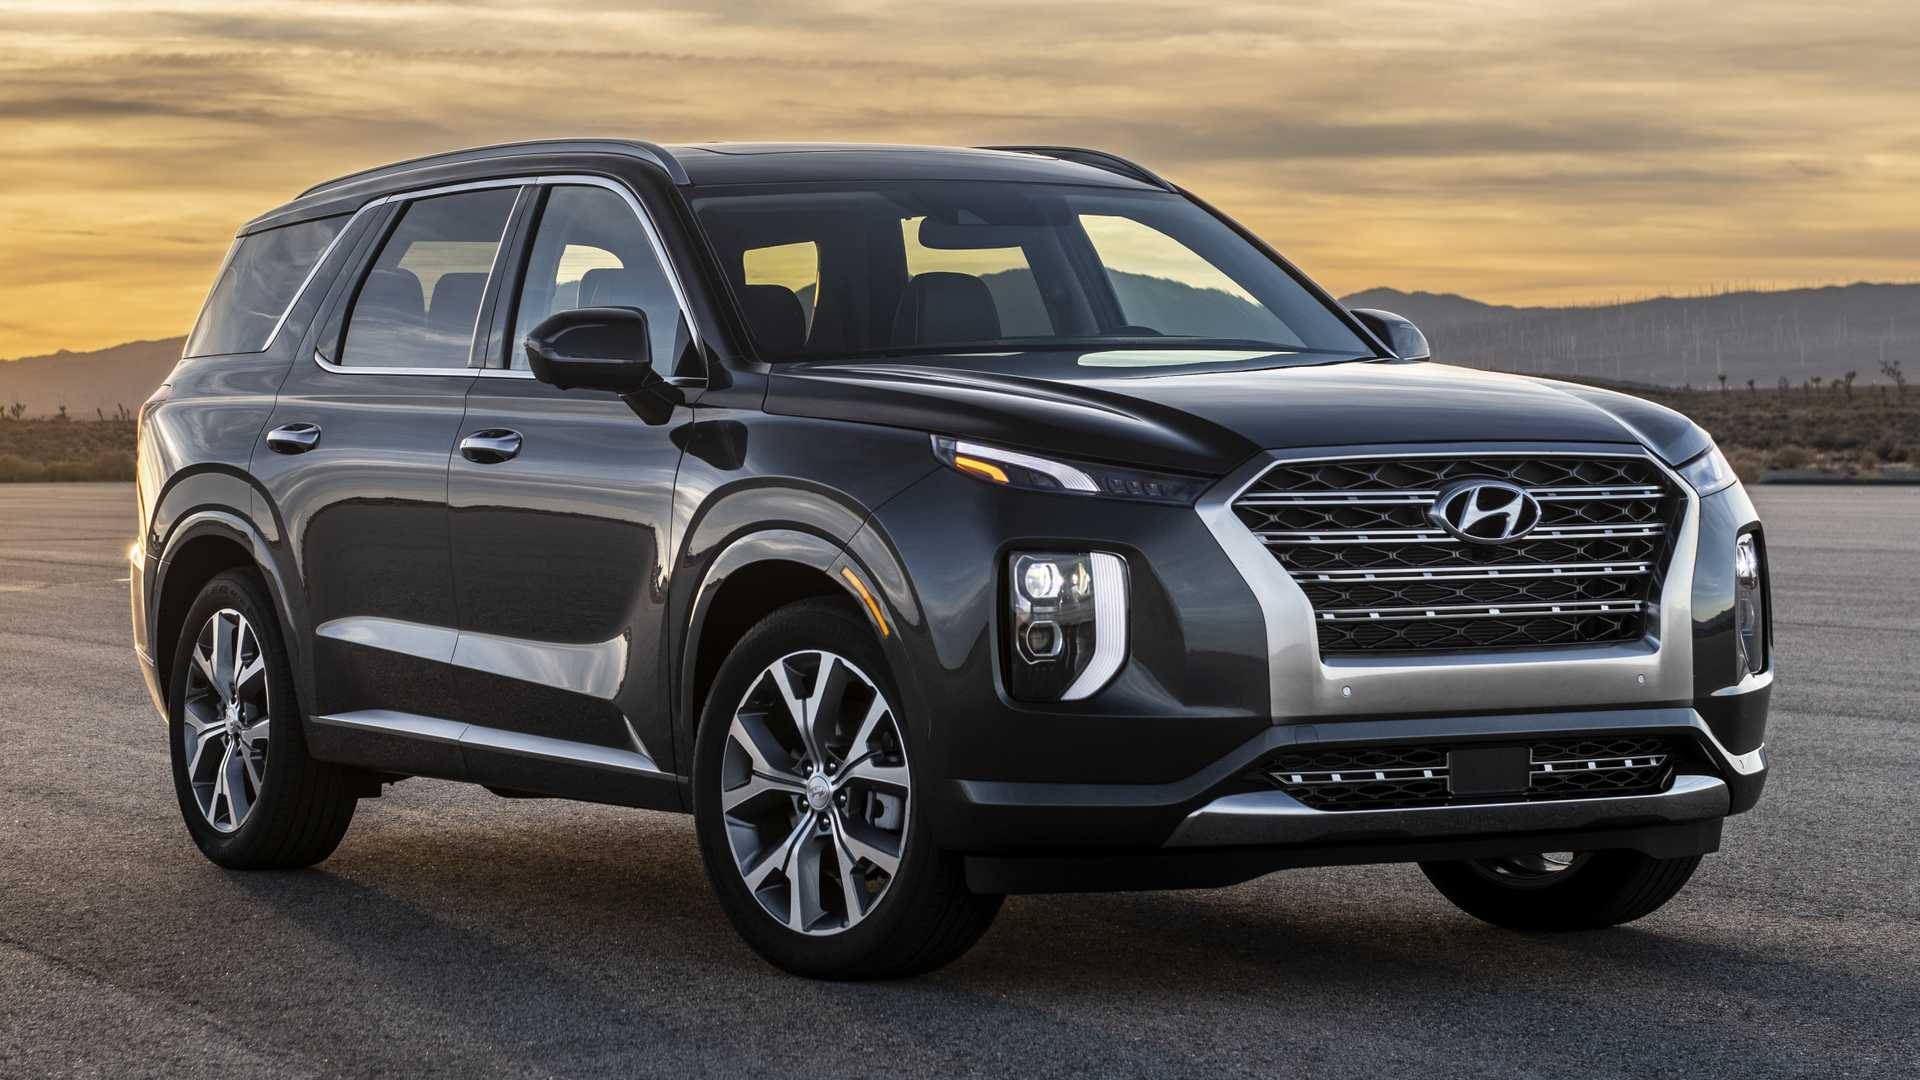 41 Best Review When Will The 2020 Hyundai Palisade Be Available Wallpaper by When Will The 2020 Hyundai Palisade Be Available